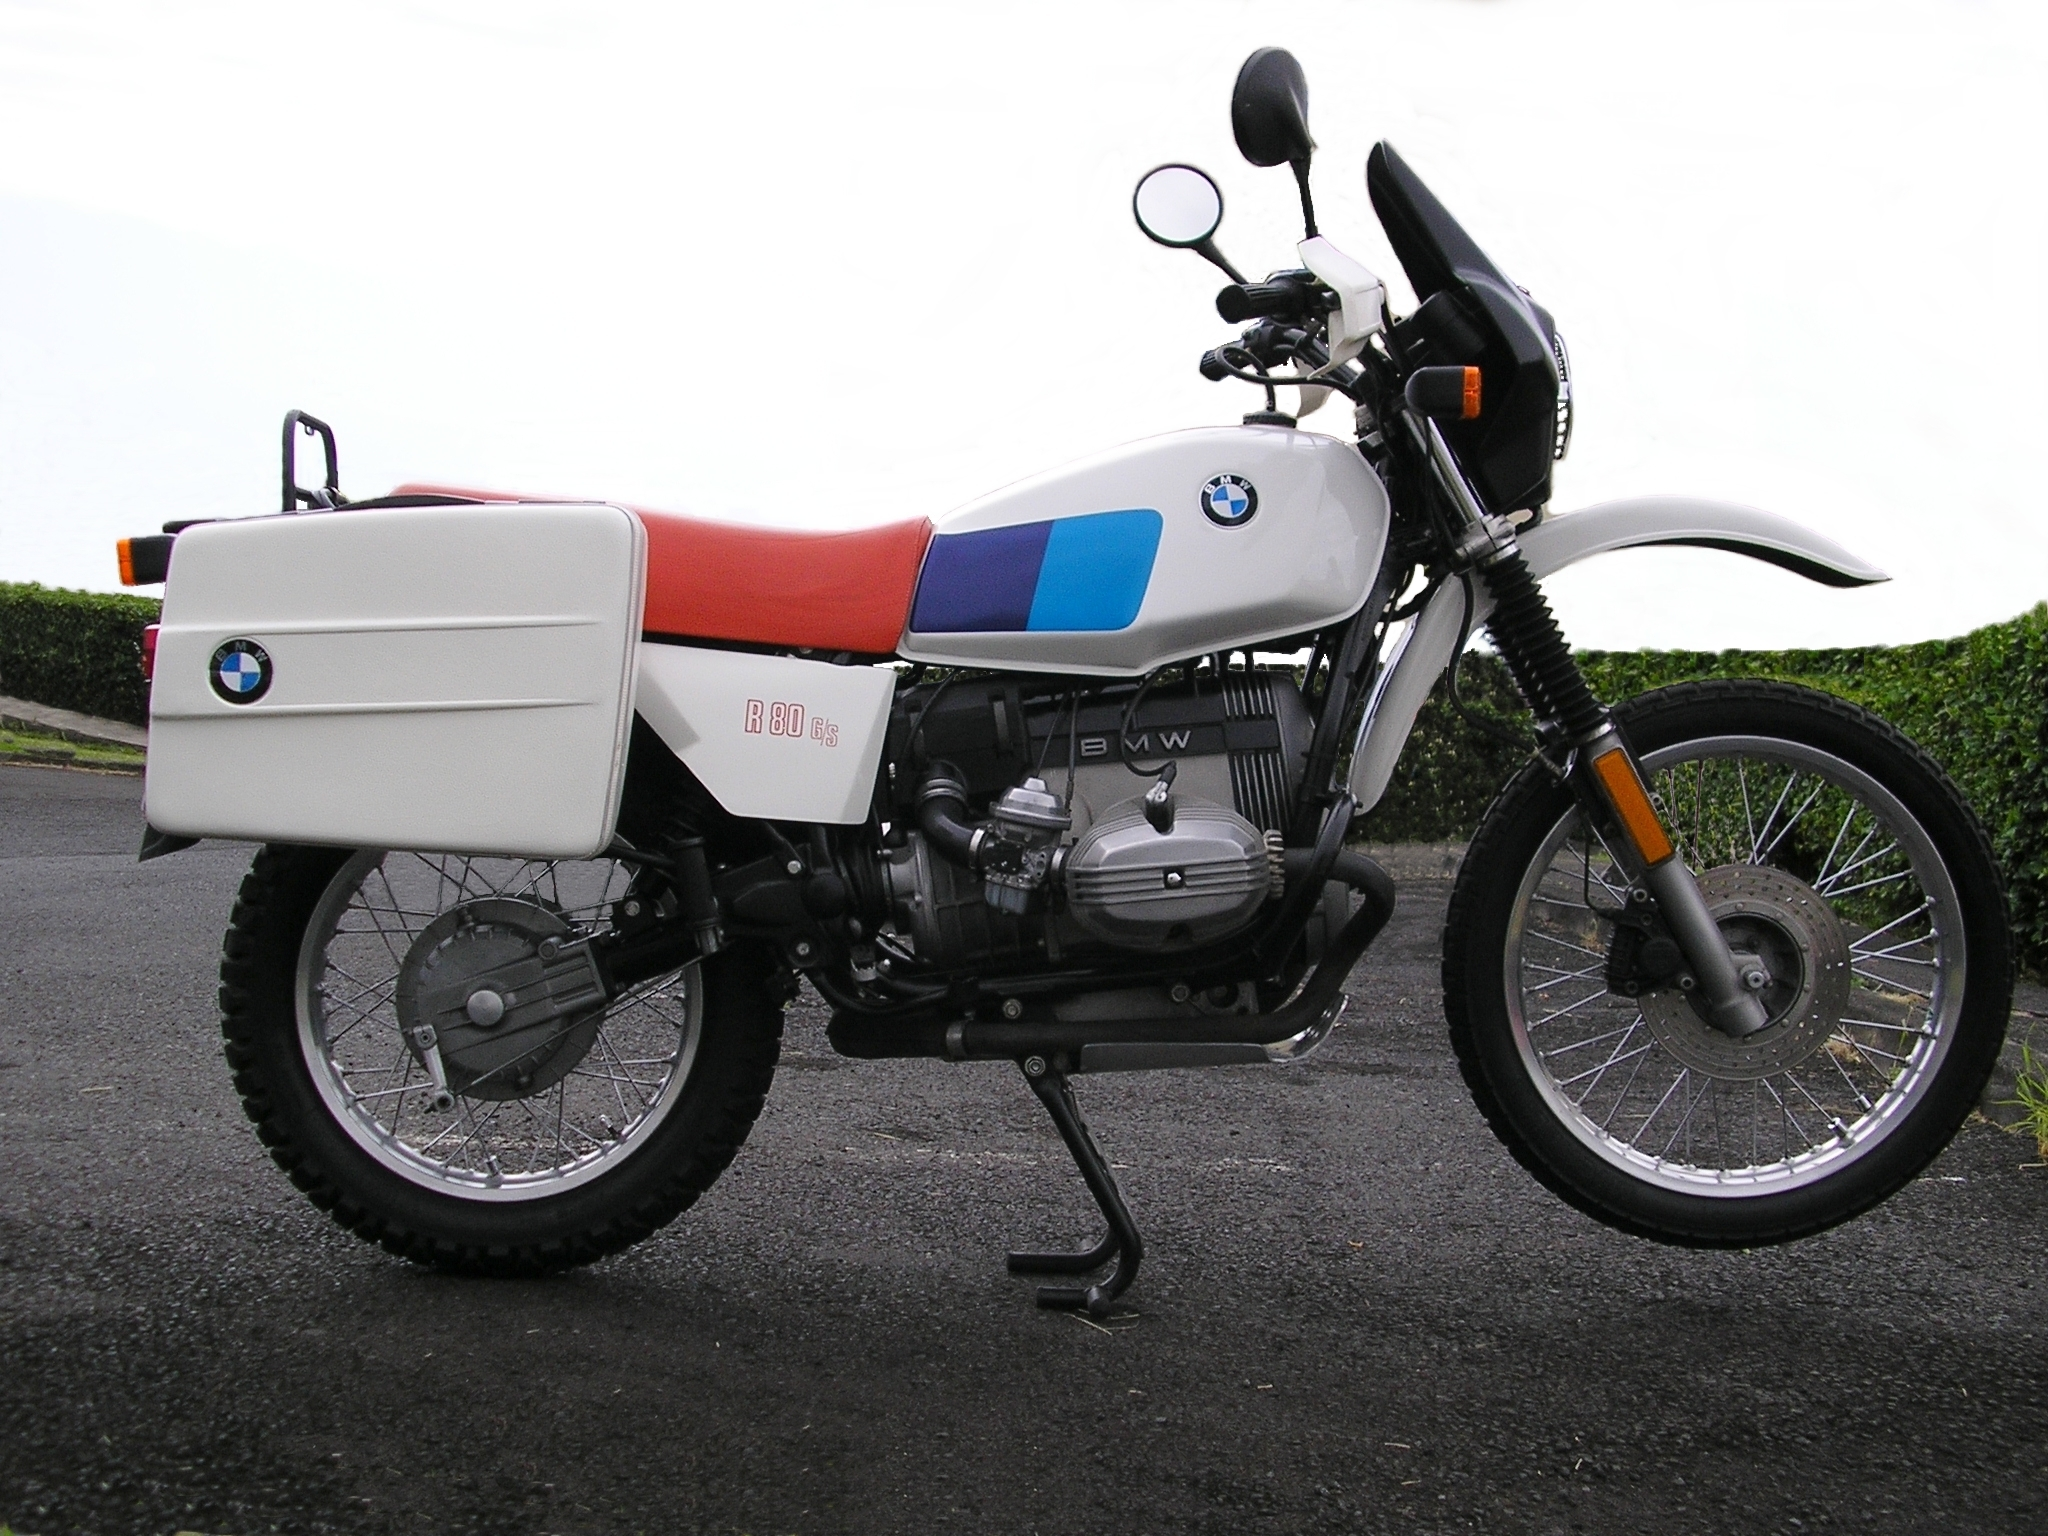 BMW R80GS 1995 images #6406